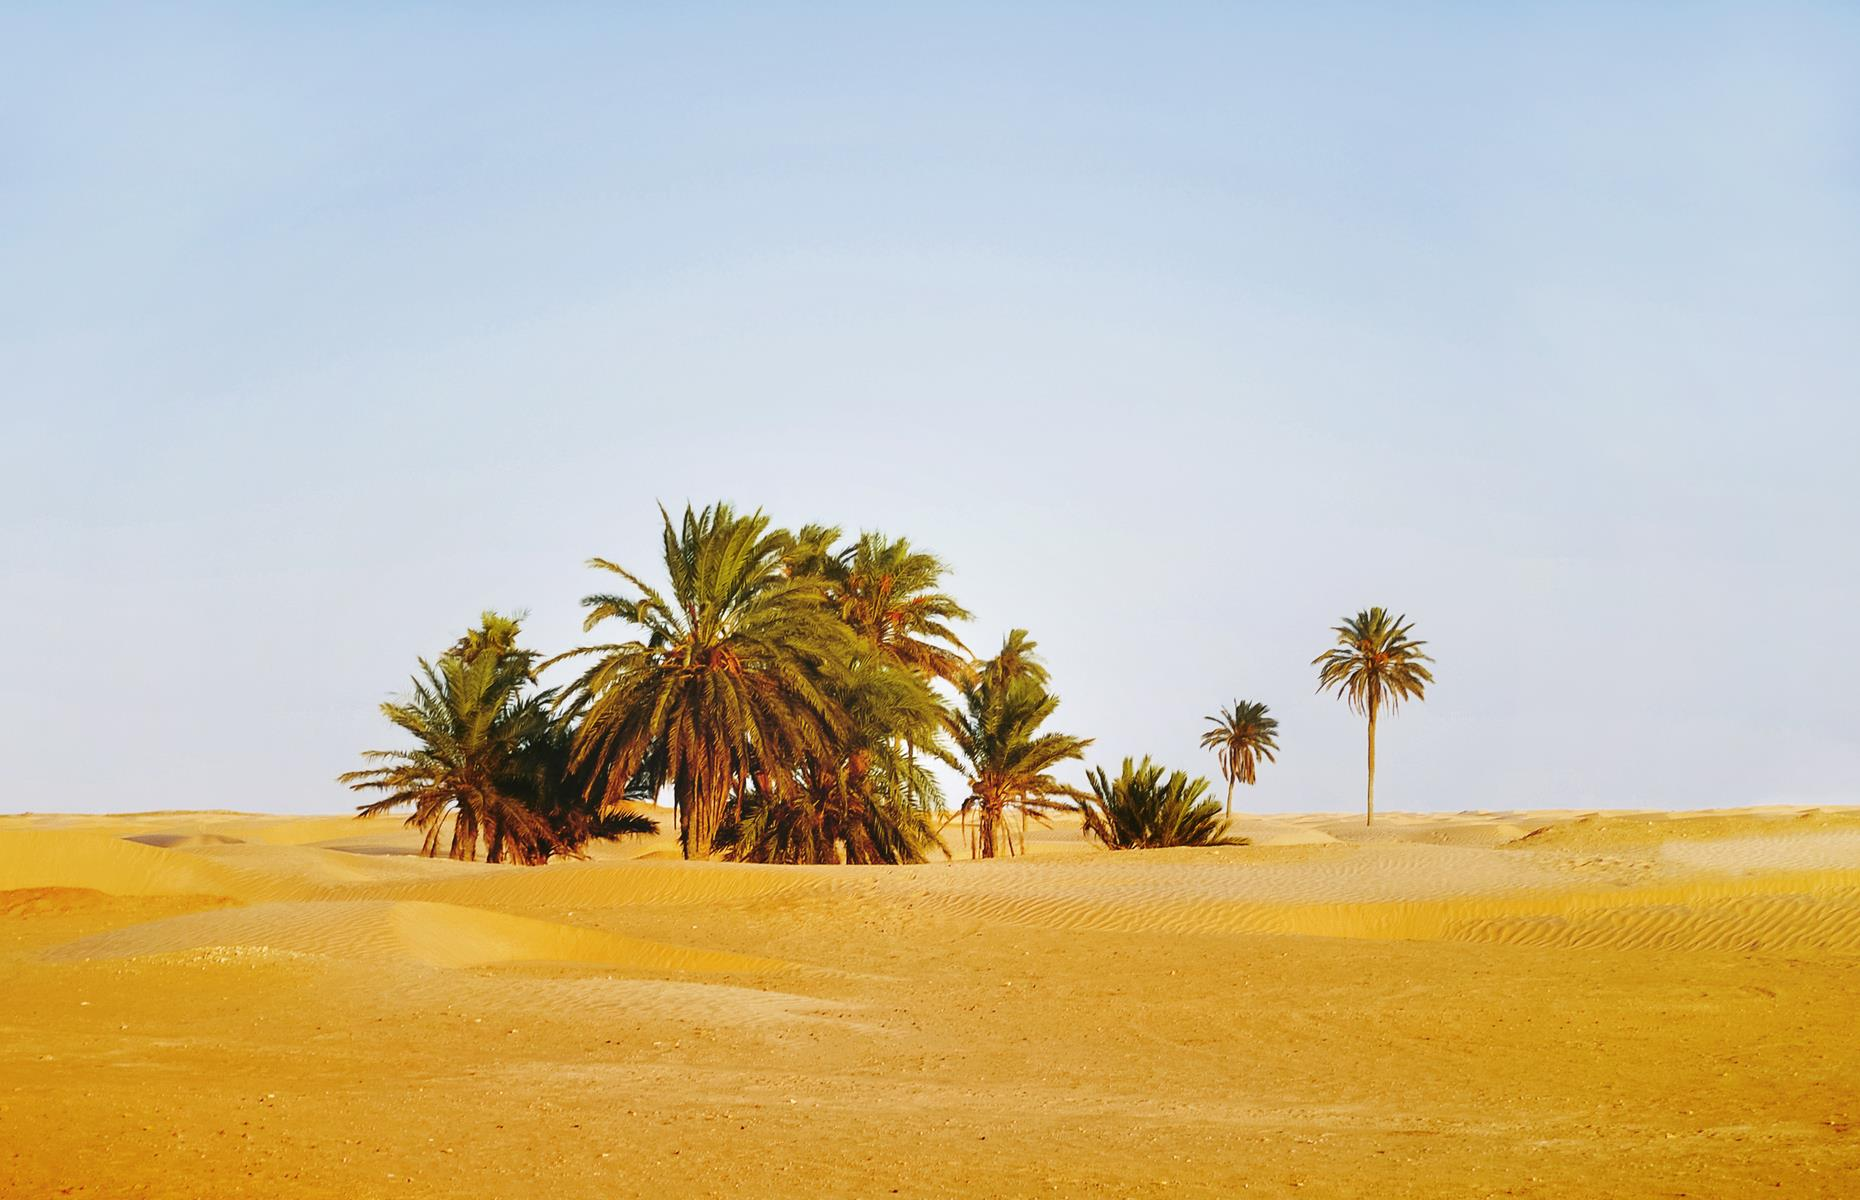 Slide 30 of 37: If the current weather conditions continue, the Sahara, which covers large areas of Algeria, Egypt, Chad, Mali, Libya, Mauritania, Morocco, Niger, Western Sahara, Tunisia and Sudan, could expand even further.Theseincredible tourist attractionsdon't look like they used to.